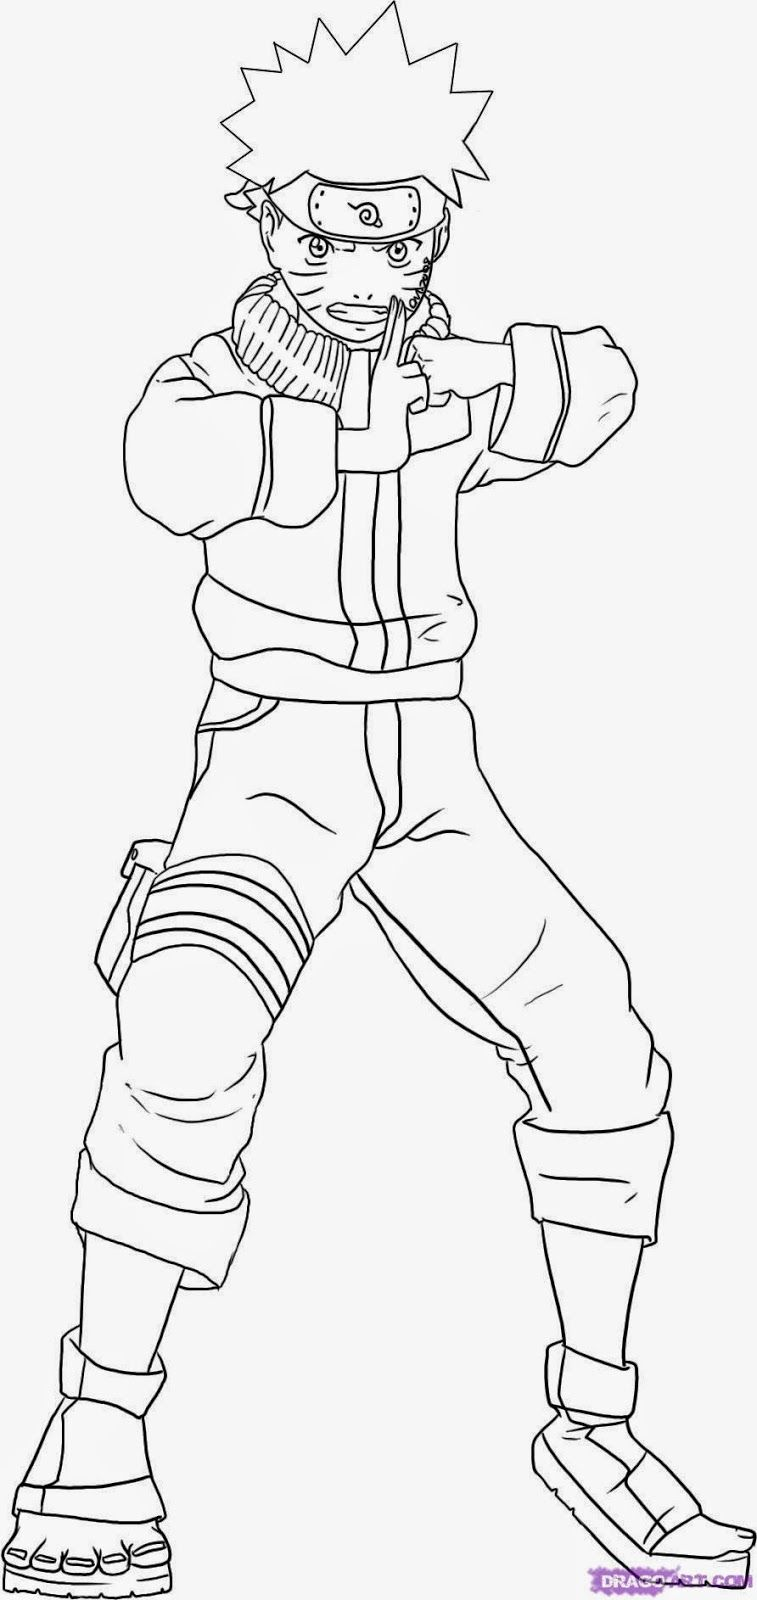 Naruto Uzumaki Coloring Pages - Coloring Home